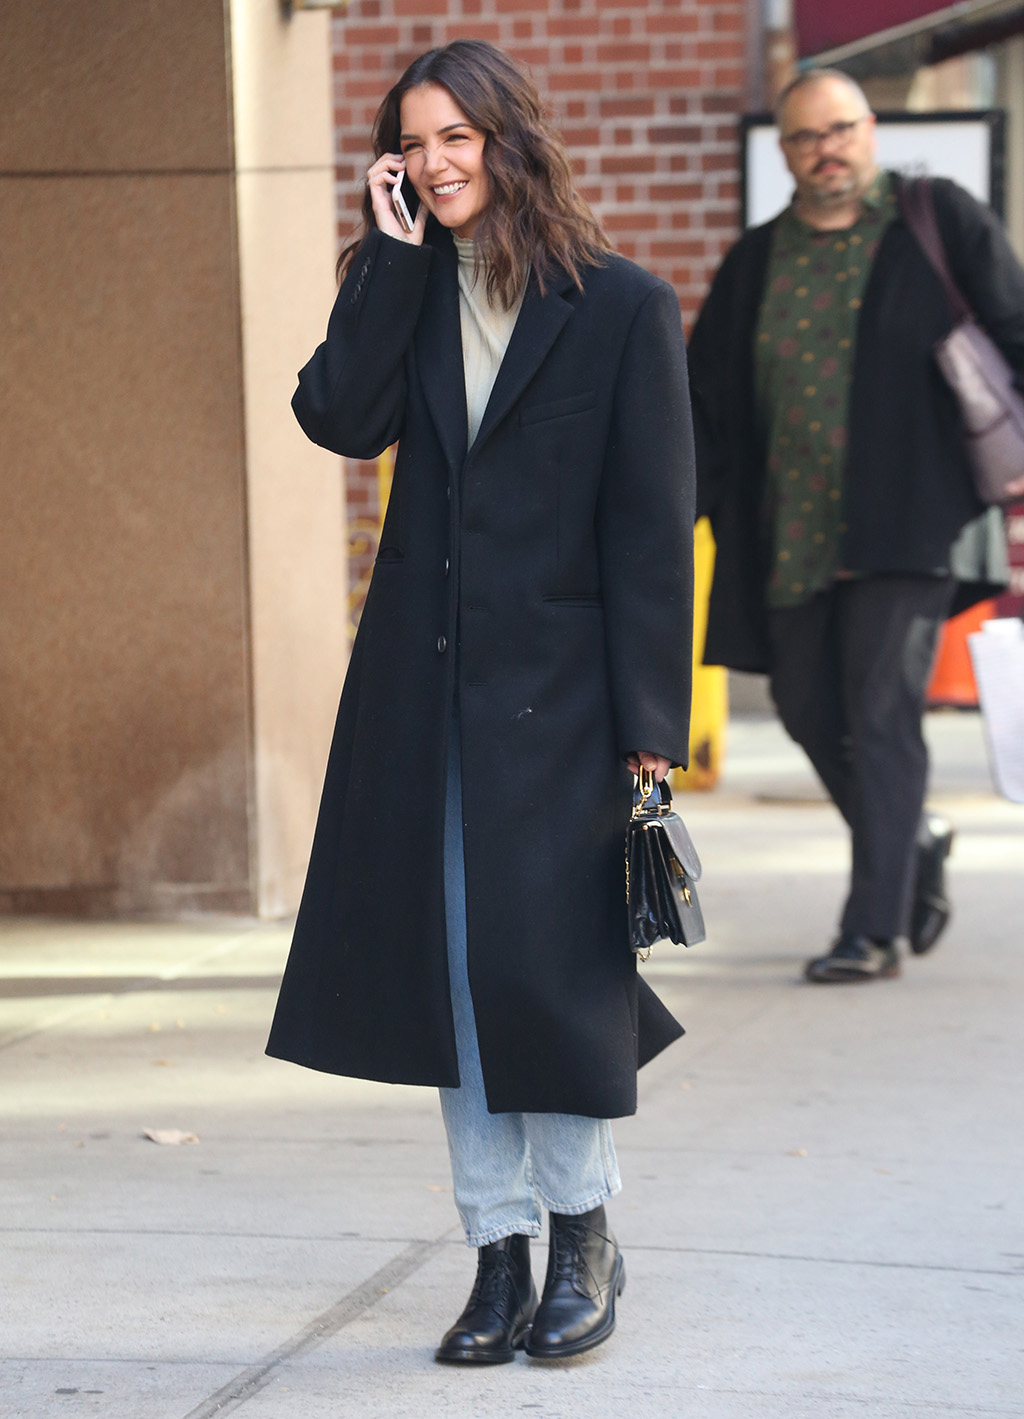 Katie Holmes, combat boots, mom jeans, turtleneck, celebrity style, nyc, street style, is all laughs and smiles while talking on her phone during a stroll in New York.Pictured: Katie HolmesRef: SPL5122459 151019 NON-EXCLUSIVEPicture by: SplashNews.comSplash News and PicturesLos Angeles: 310-821-2666New York: 212-619-2666London: +44 (0)20 7644 7656Berlin: +49 175 3764 166photodesk@splashnews.comWorld Rights